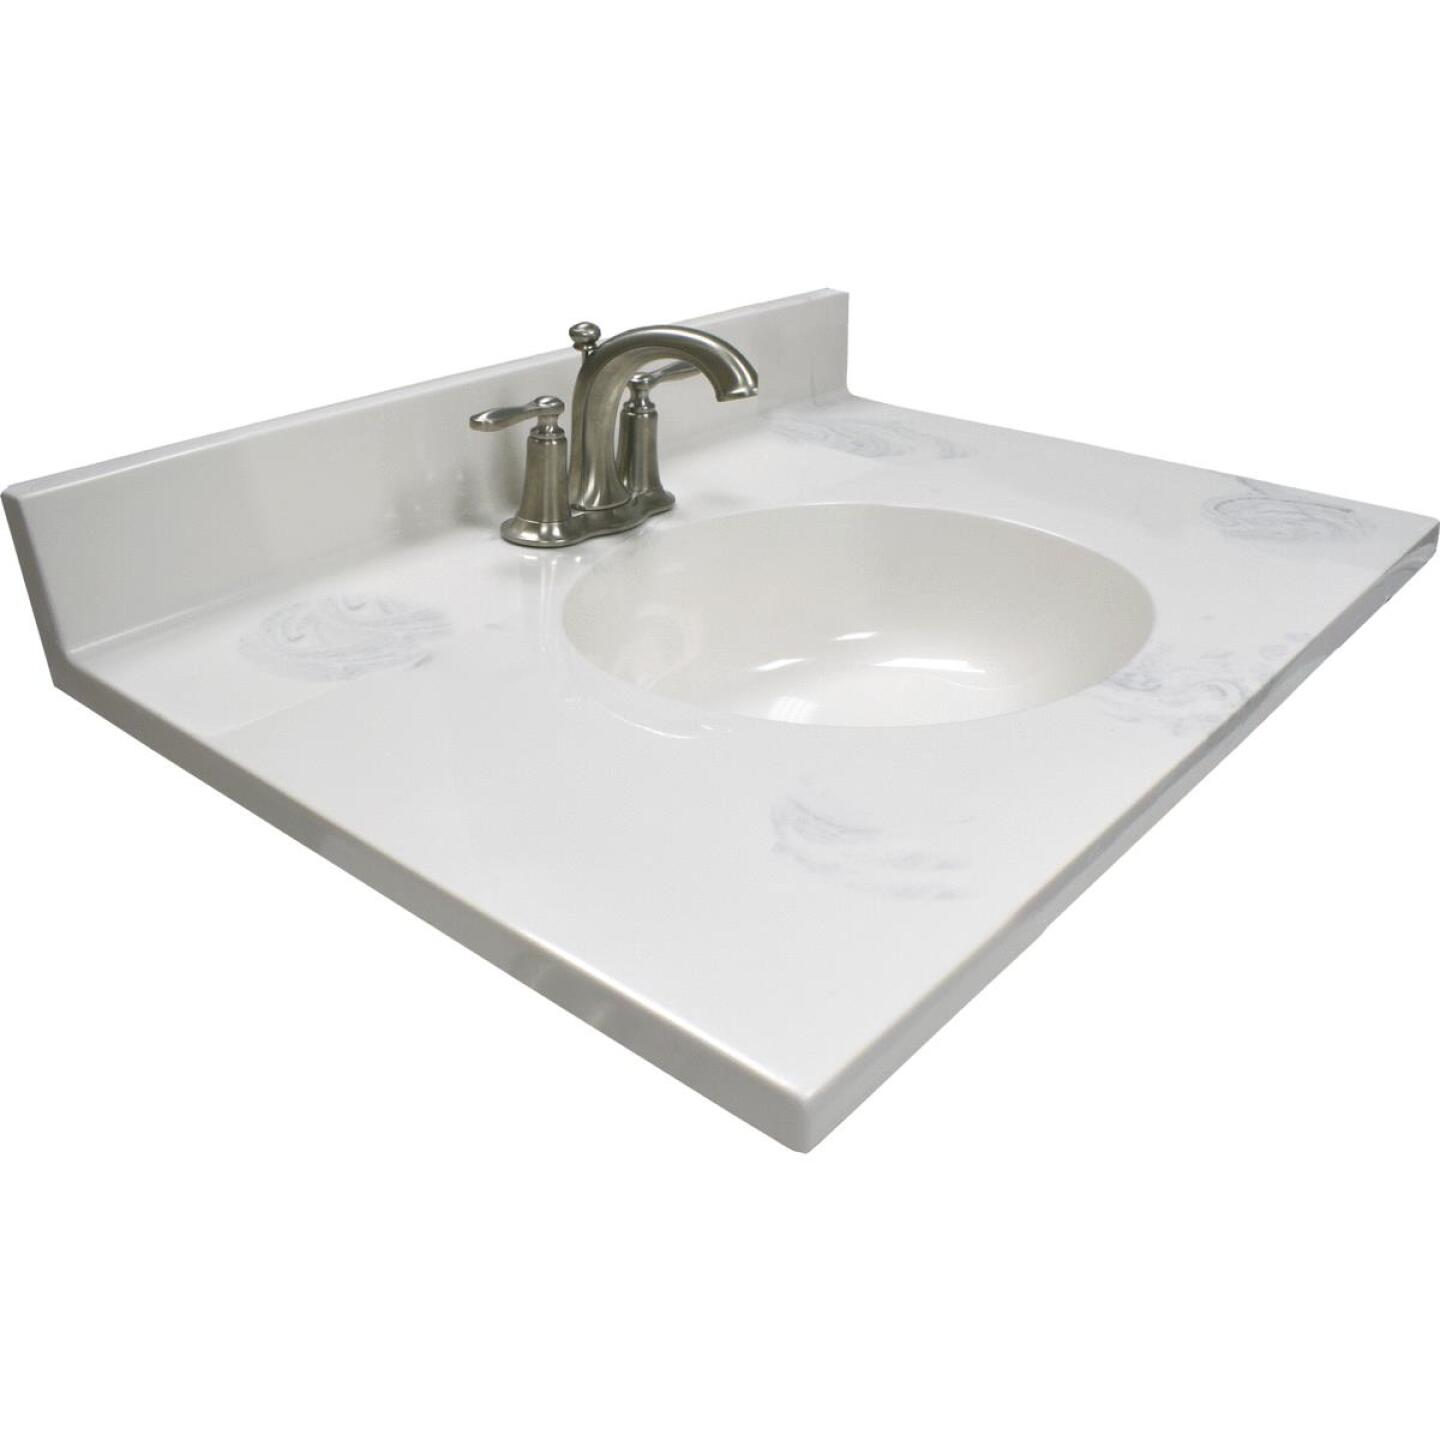 Modular Vanity Tops 31 In. W x 22 In. D Marbled Dove Gray Cultured Marble Vanity Top with Oval Bowl Image 1